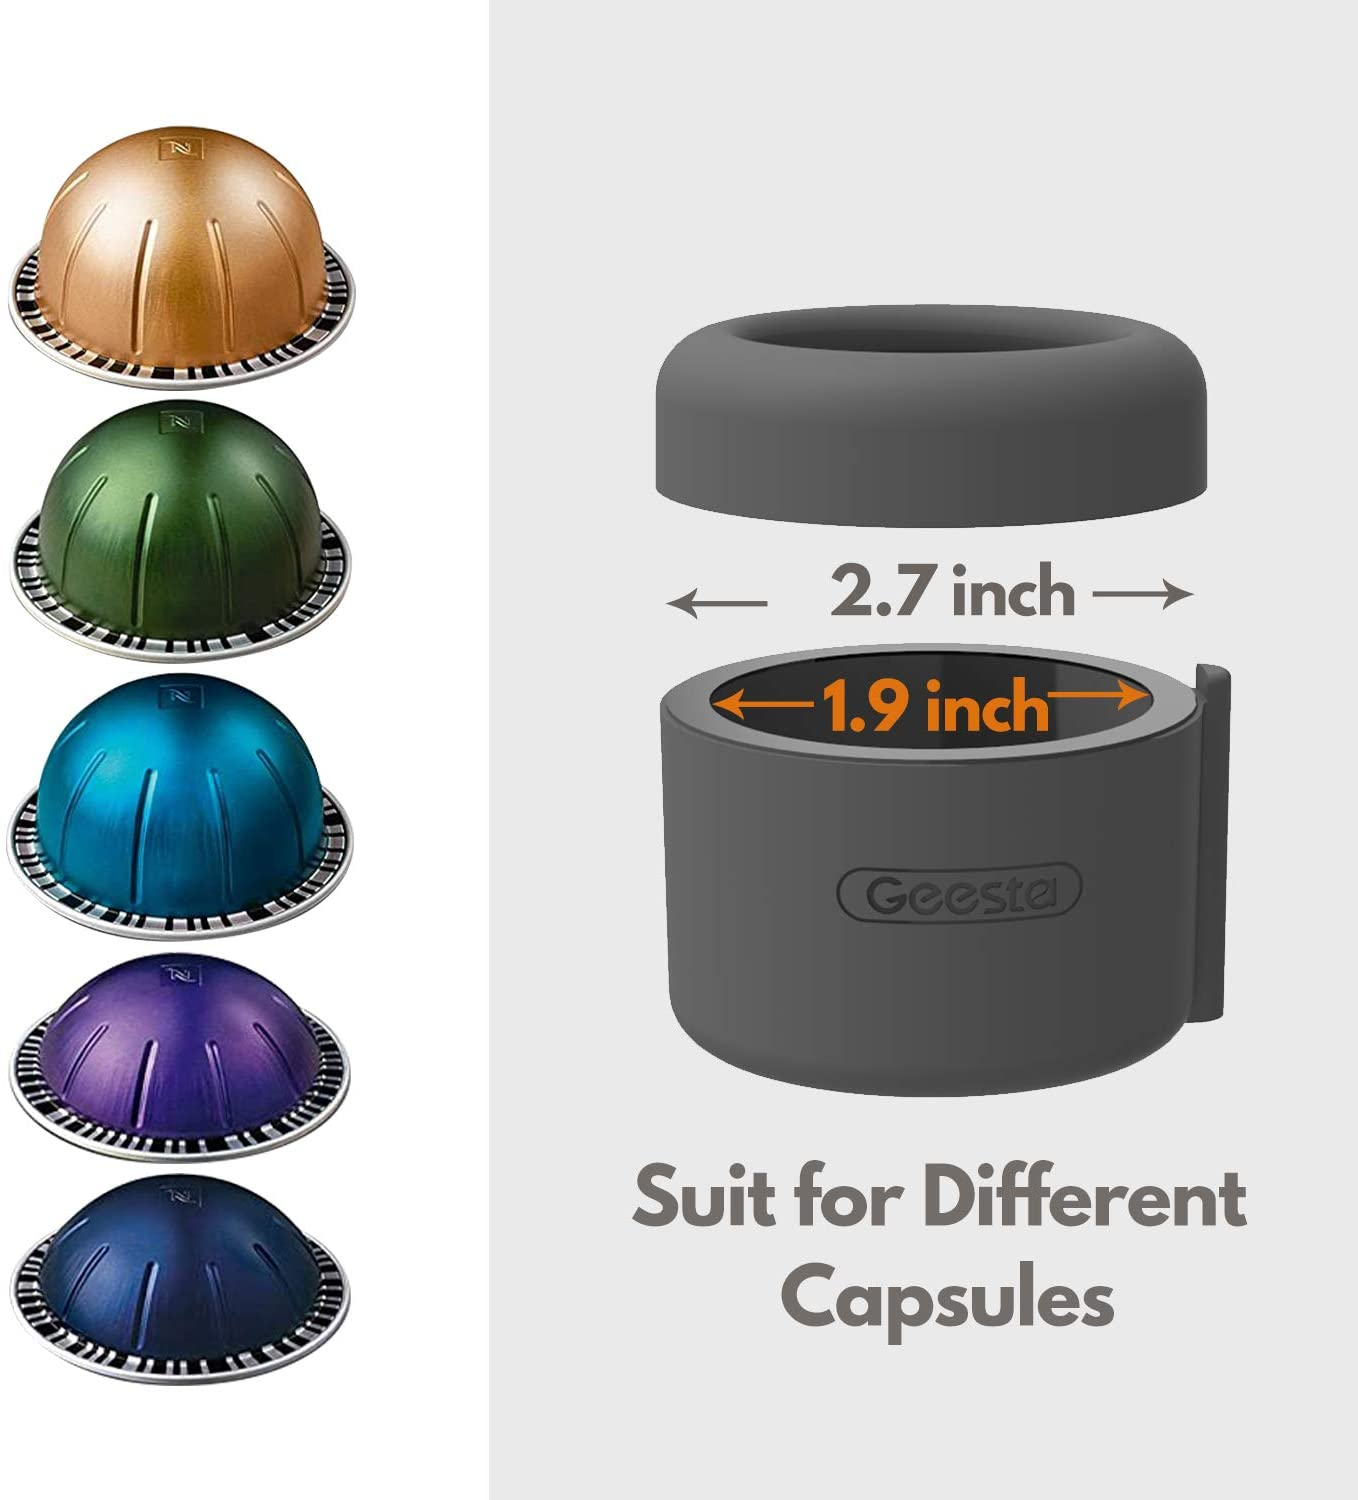 Reusable Capsule Holder and 80 Premium Foil Seals Easy-Seal Coffee Capsule Refill Kit for Nespresso Vertuoline with a Brush Scoop